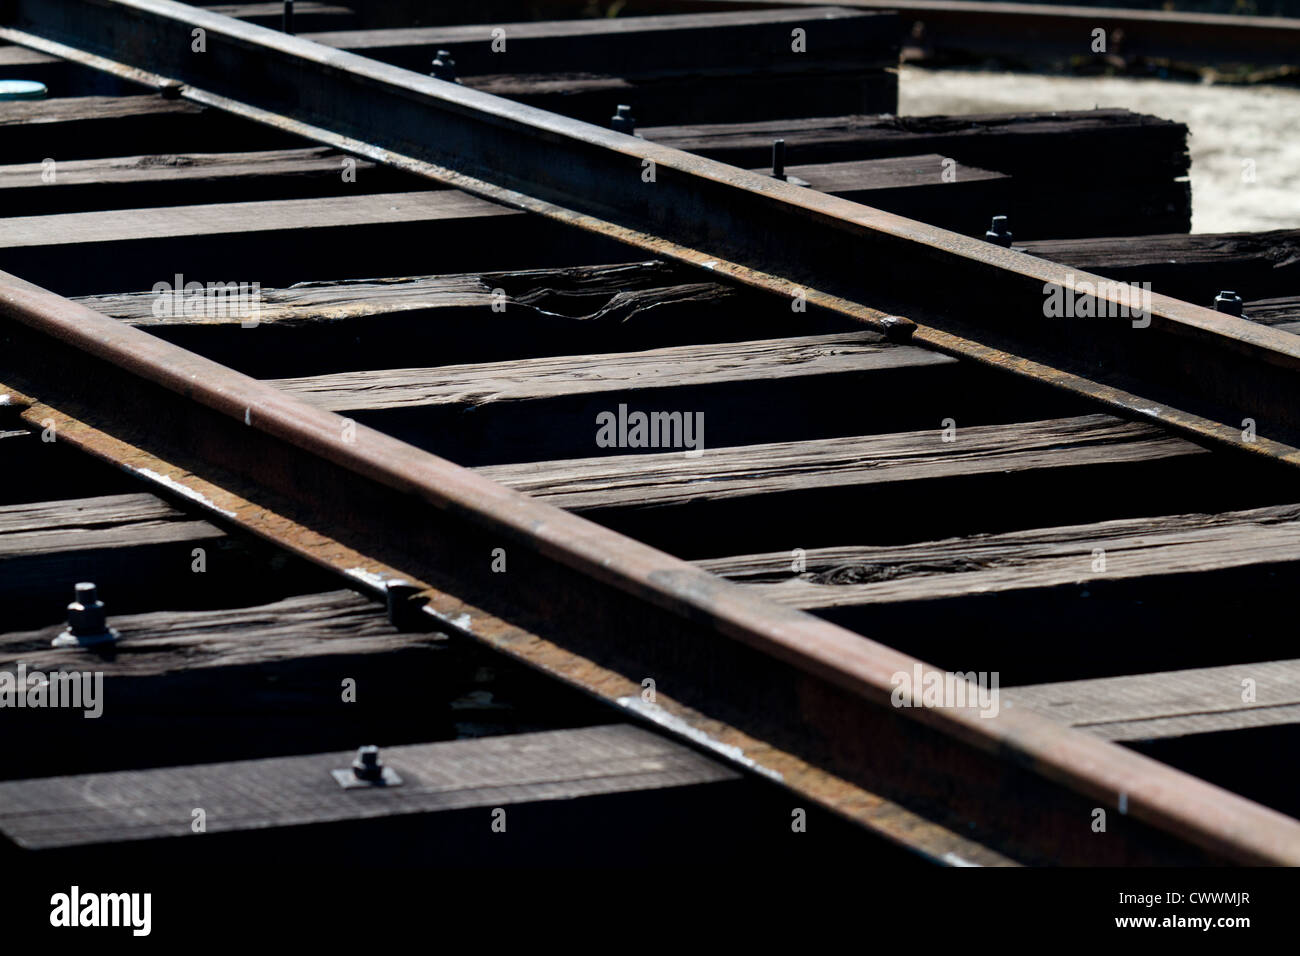 Part of the old tracks at the old Taidong train station build from